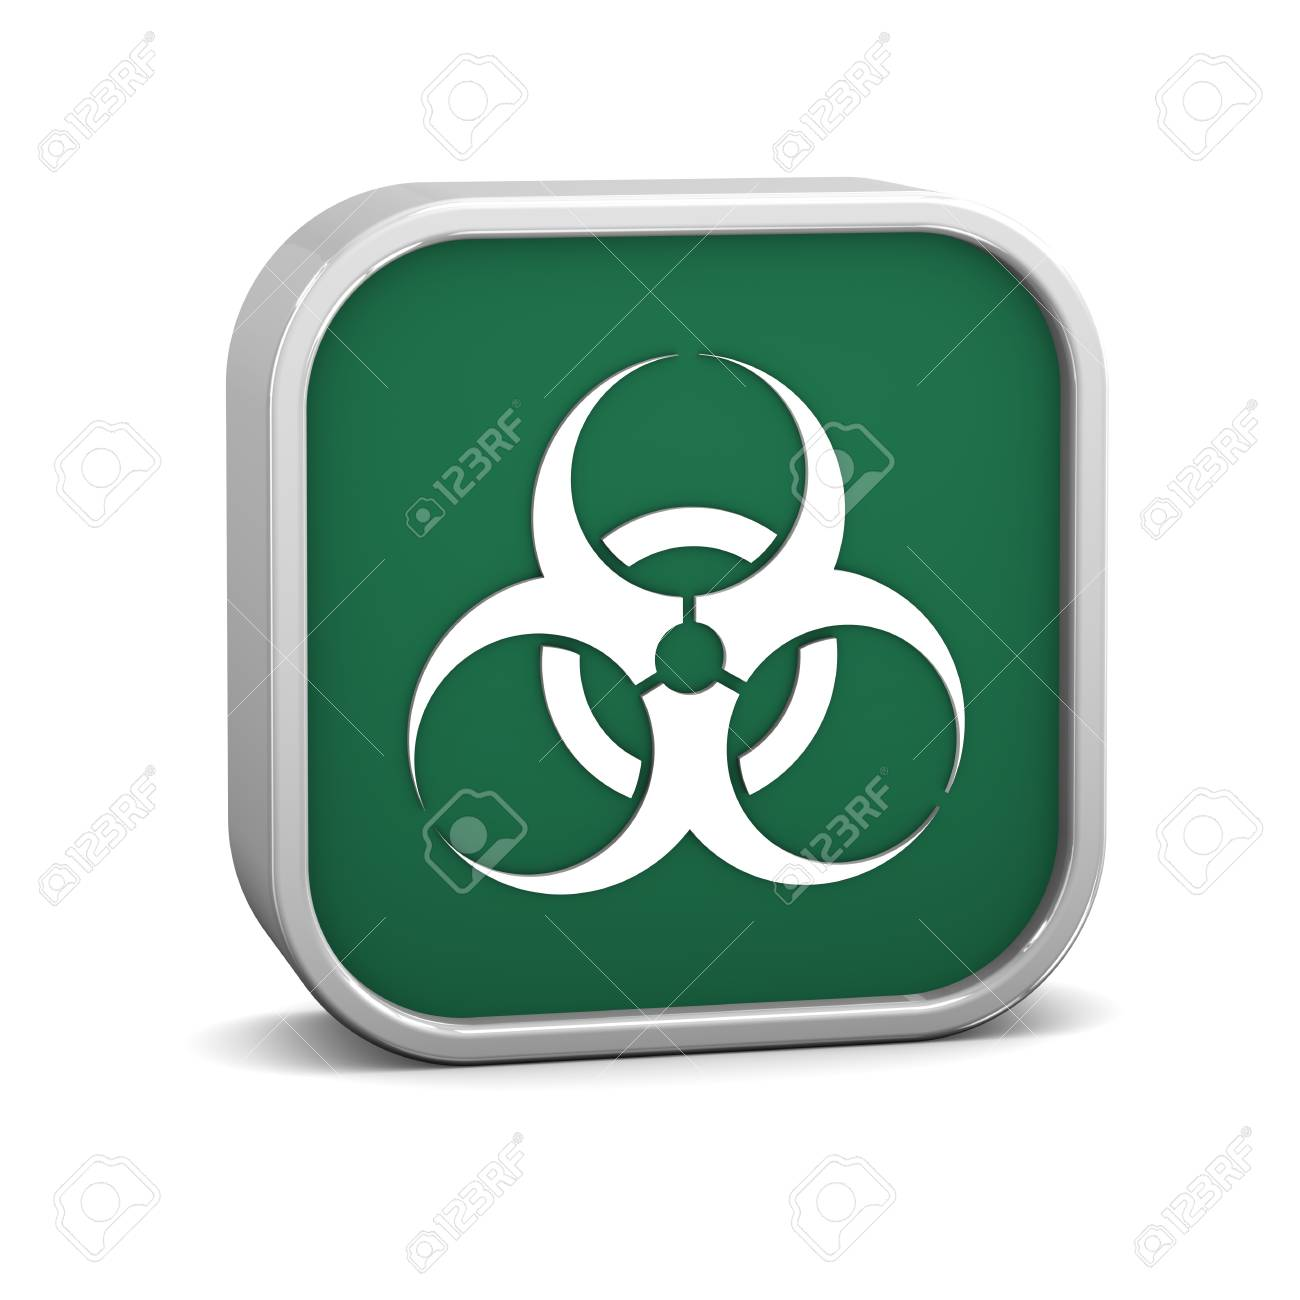 Biohazard sign on a white background. Part of a series. Stock Photo - 13701481